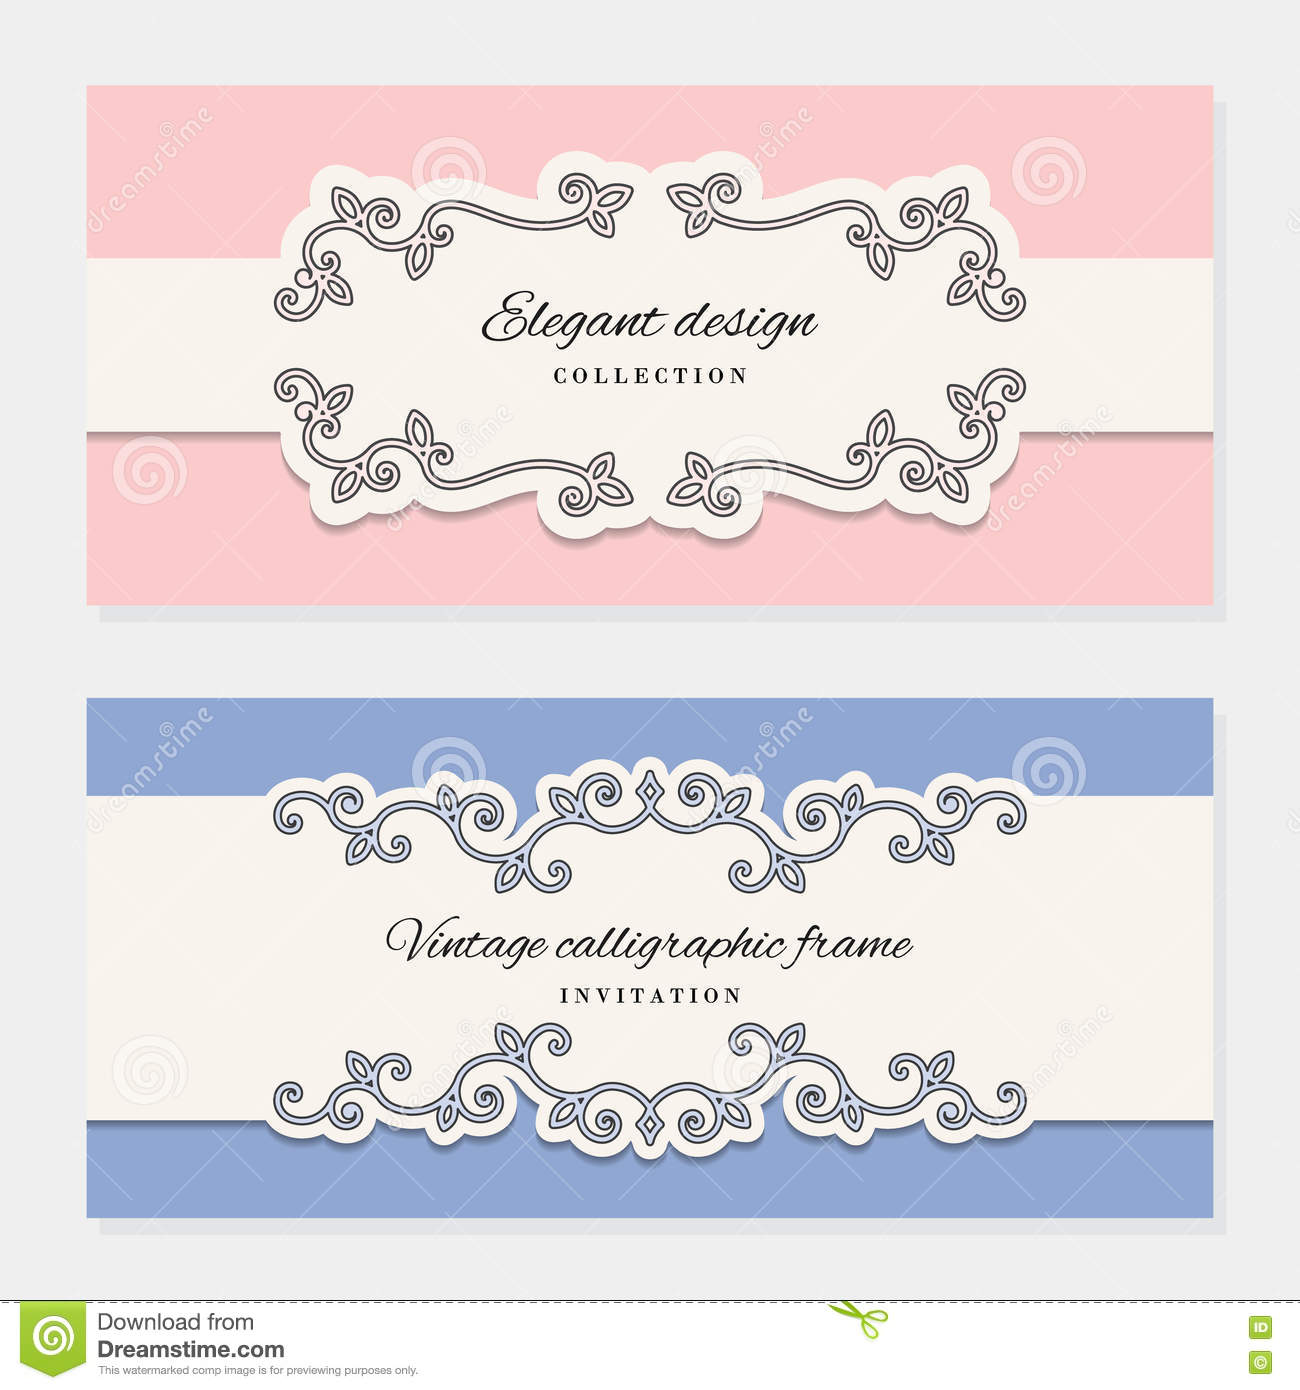 image regarding Paper Cutout Templates identify Traditional Card Templates. For Marriage ceremony Invites, Stylish